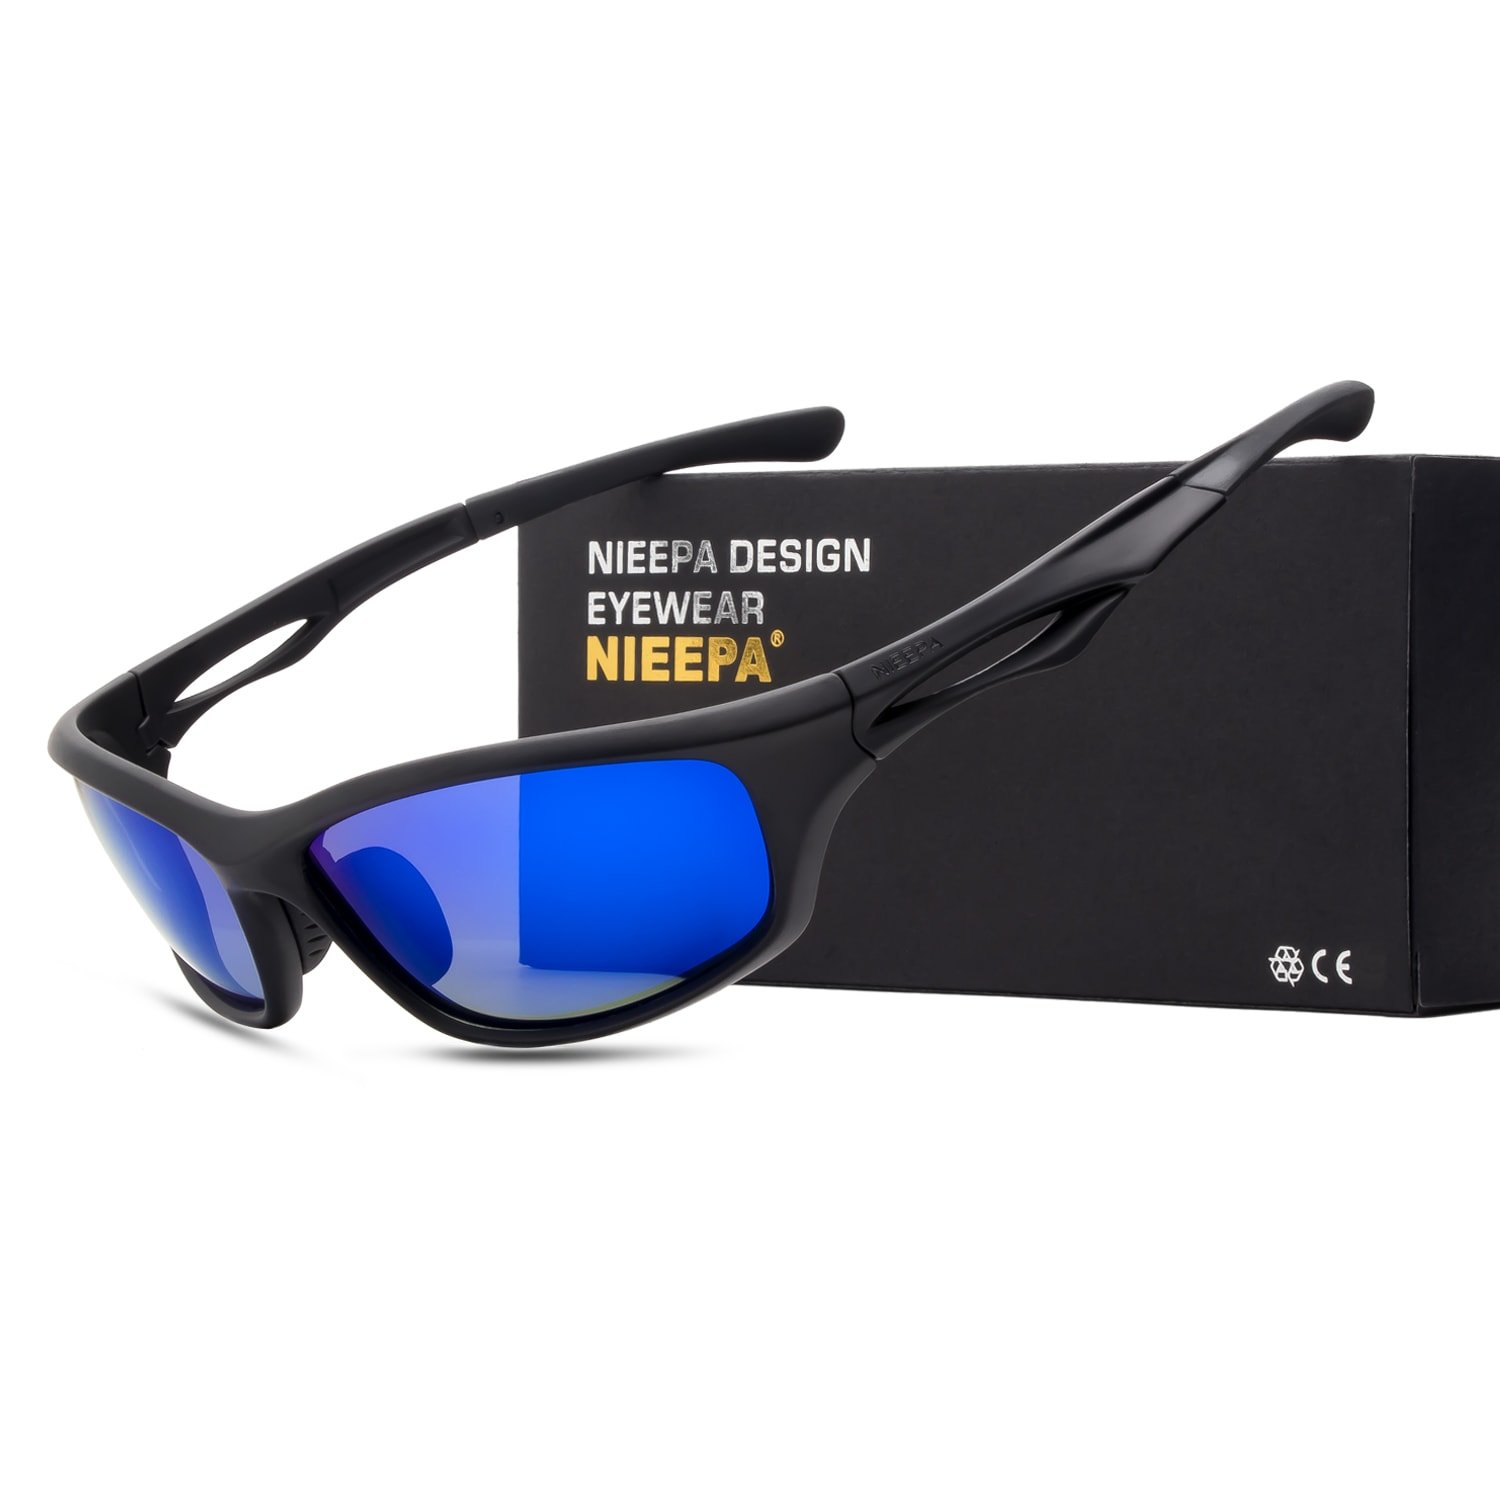 33cc01179e Amazon.com  NIEEPA Polarized Sports Sunglasses Tr90 Durable Frame Glasses  For Men Cycling Running Fishing Golf Baseball (Blue Lens Black Frame)   Sports   ...